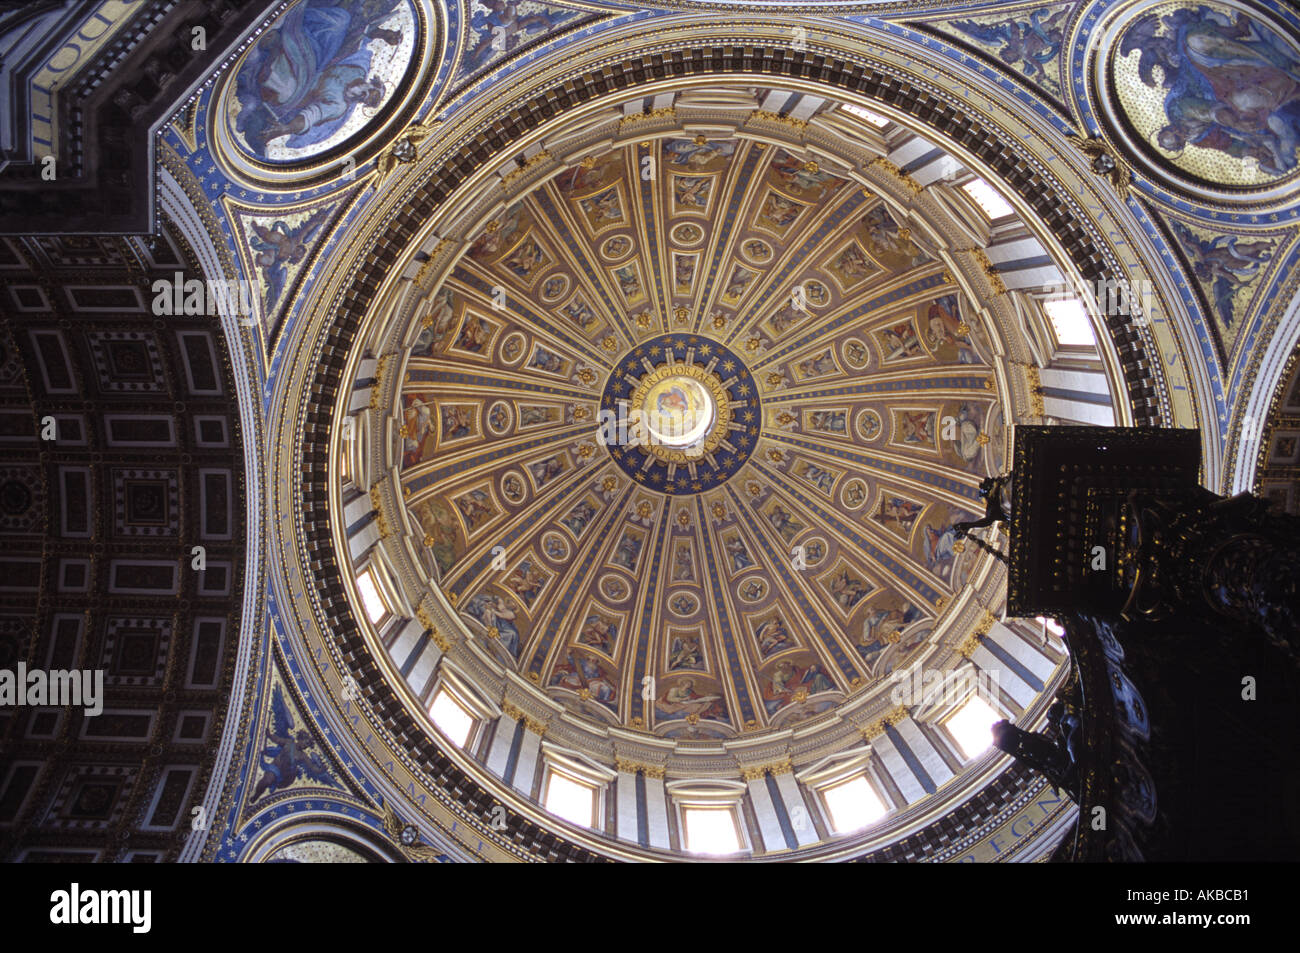 Looking up at the Michelangelo designed dome in Saint Peter s Basilica in Rome s Vatican City - Stock Image